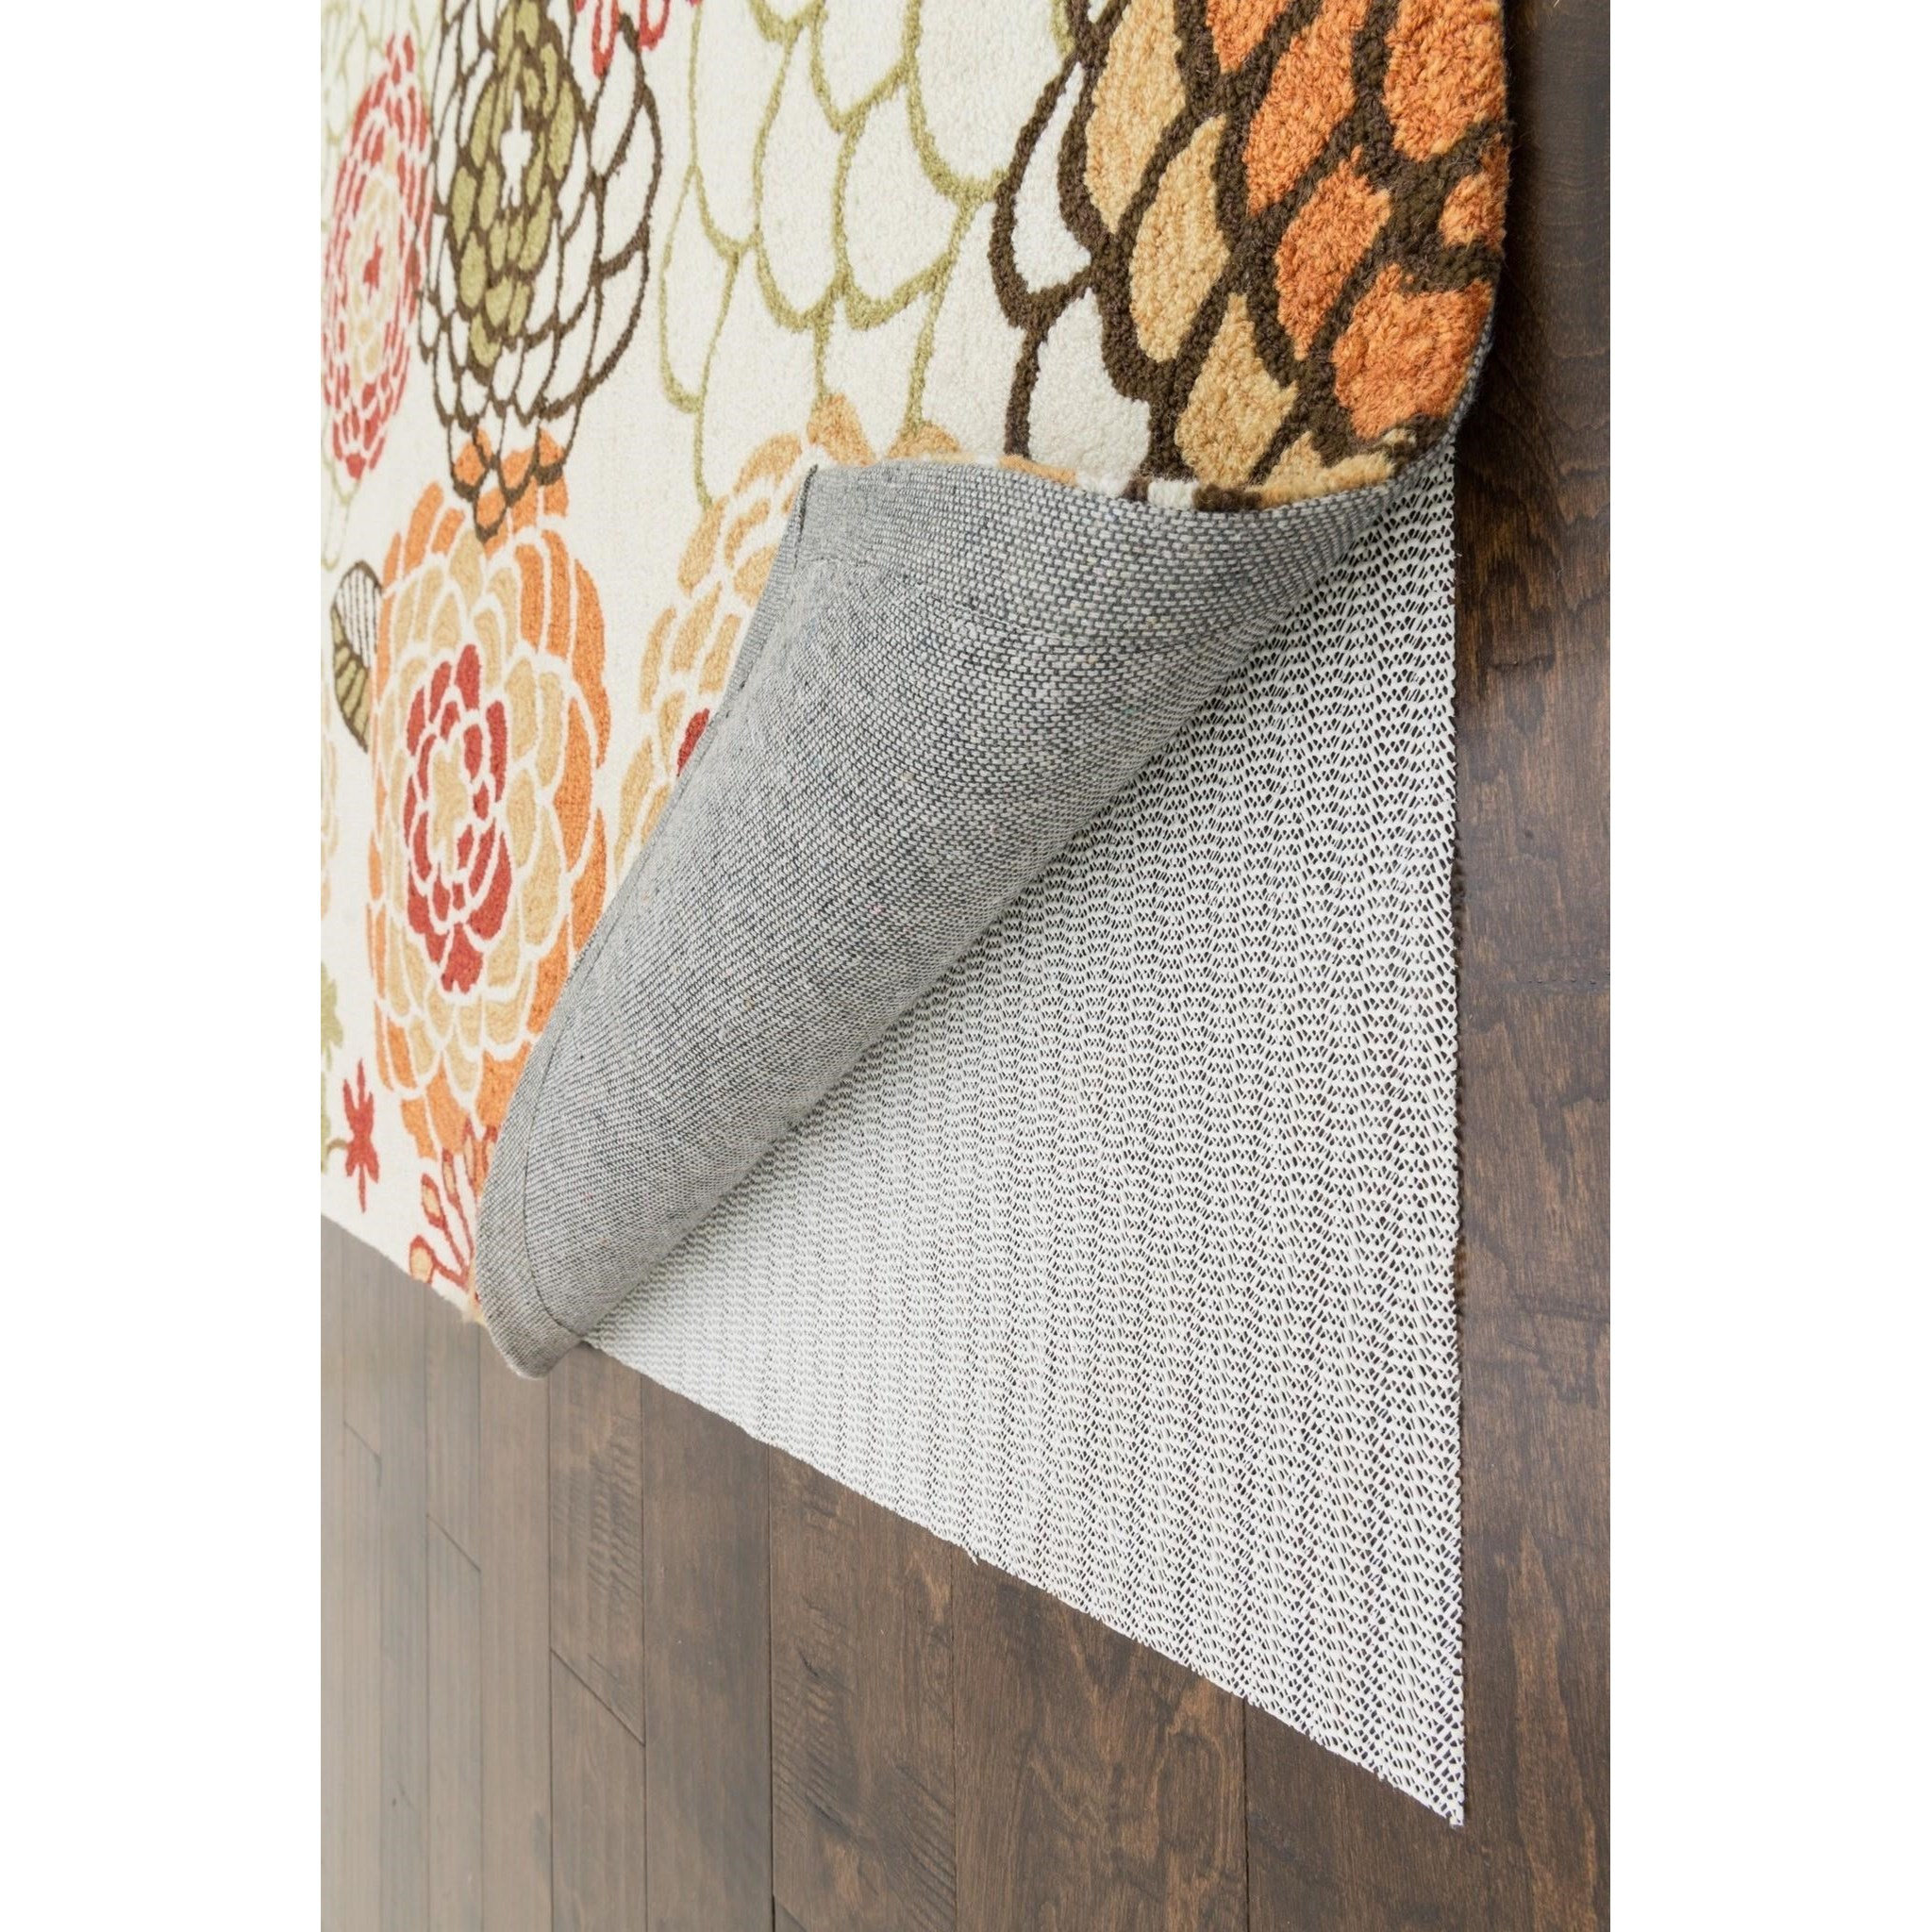 """Secure Grip Rug Pad 10'-0"""" X 14'-0"""" Rug by Loloi Rugs at Virginia Furniture Market"""